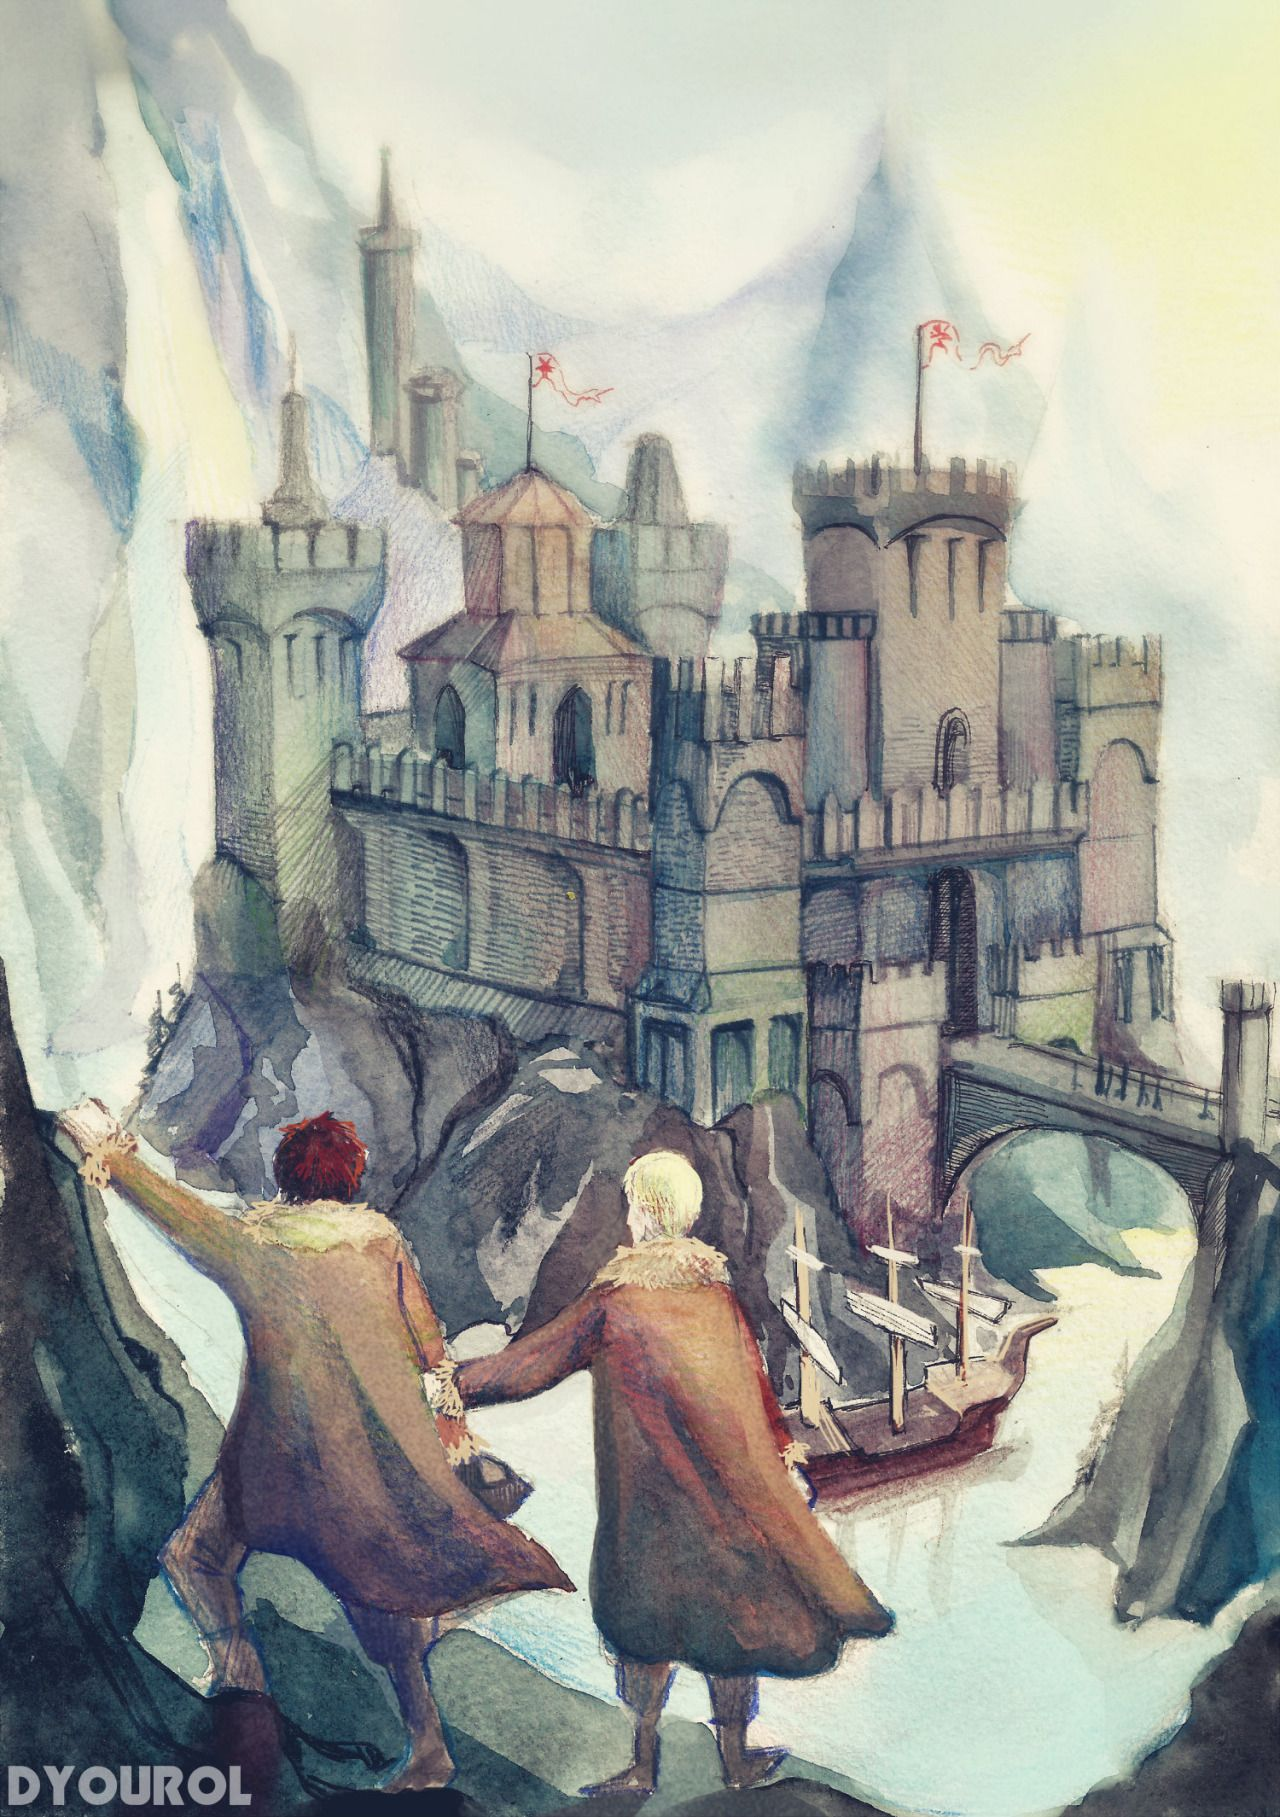 The Durmstrang Institute Harry Potter Fan Art Harry Potter Art Drarry Fanart The school, which presumably takes mainly northern european students, is willing to accept international students as far afield as bulgaria. harry potter fan art